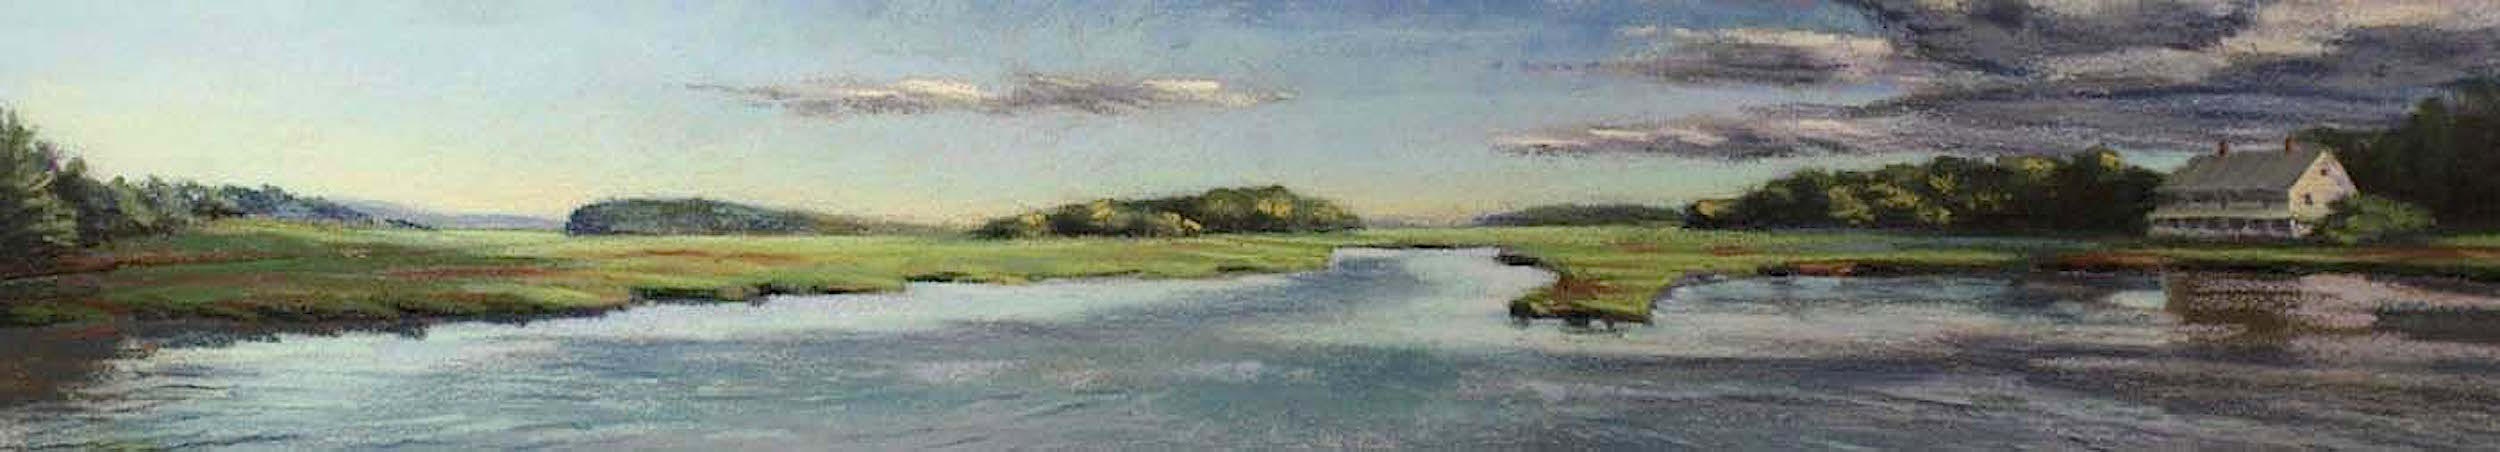 """Marsh House Panorama"", pastel on sanded paper, 11.5"" x 31.5"", $1,600 (framed)"